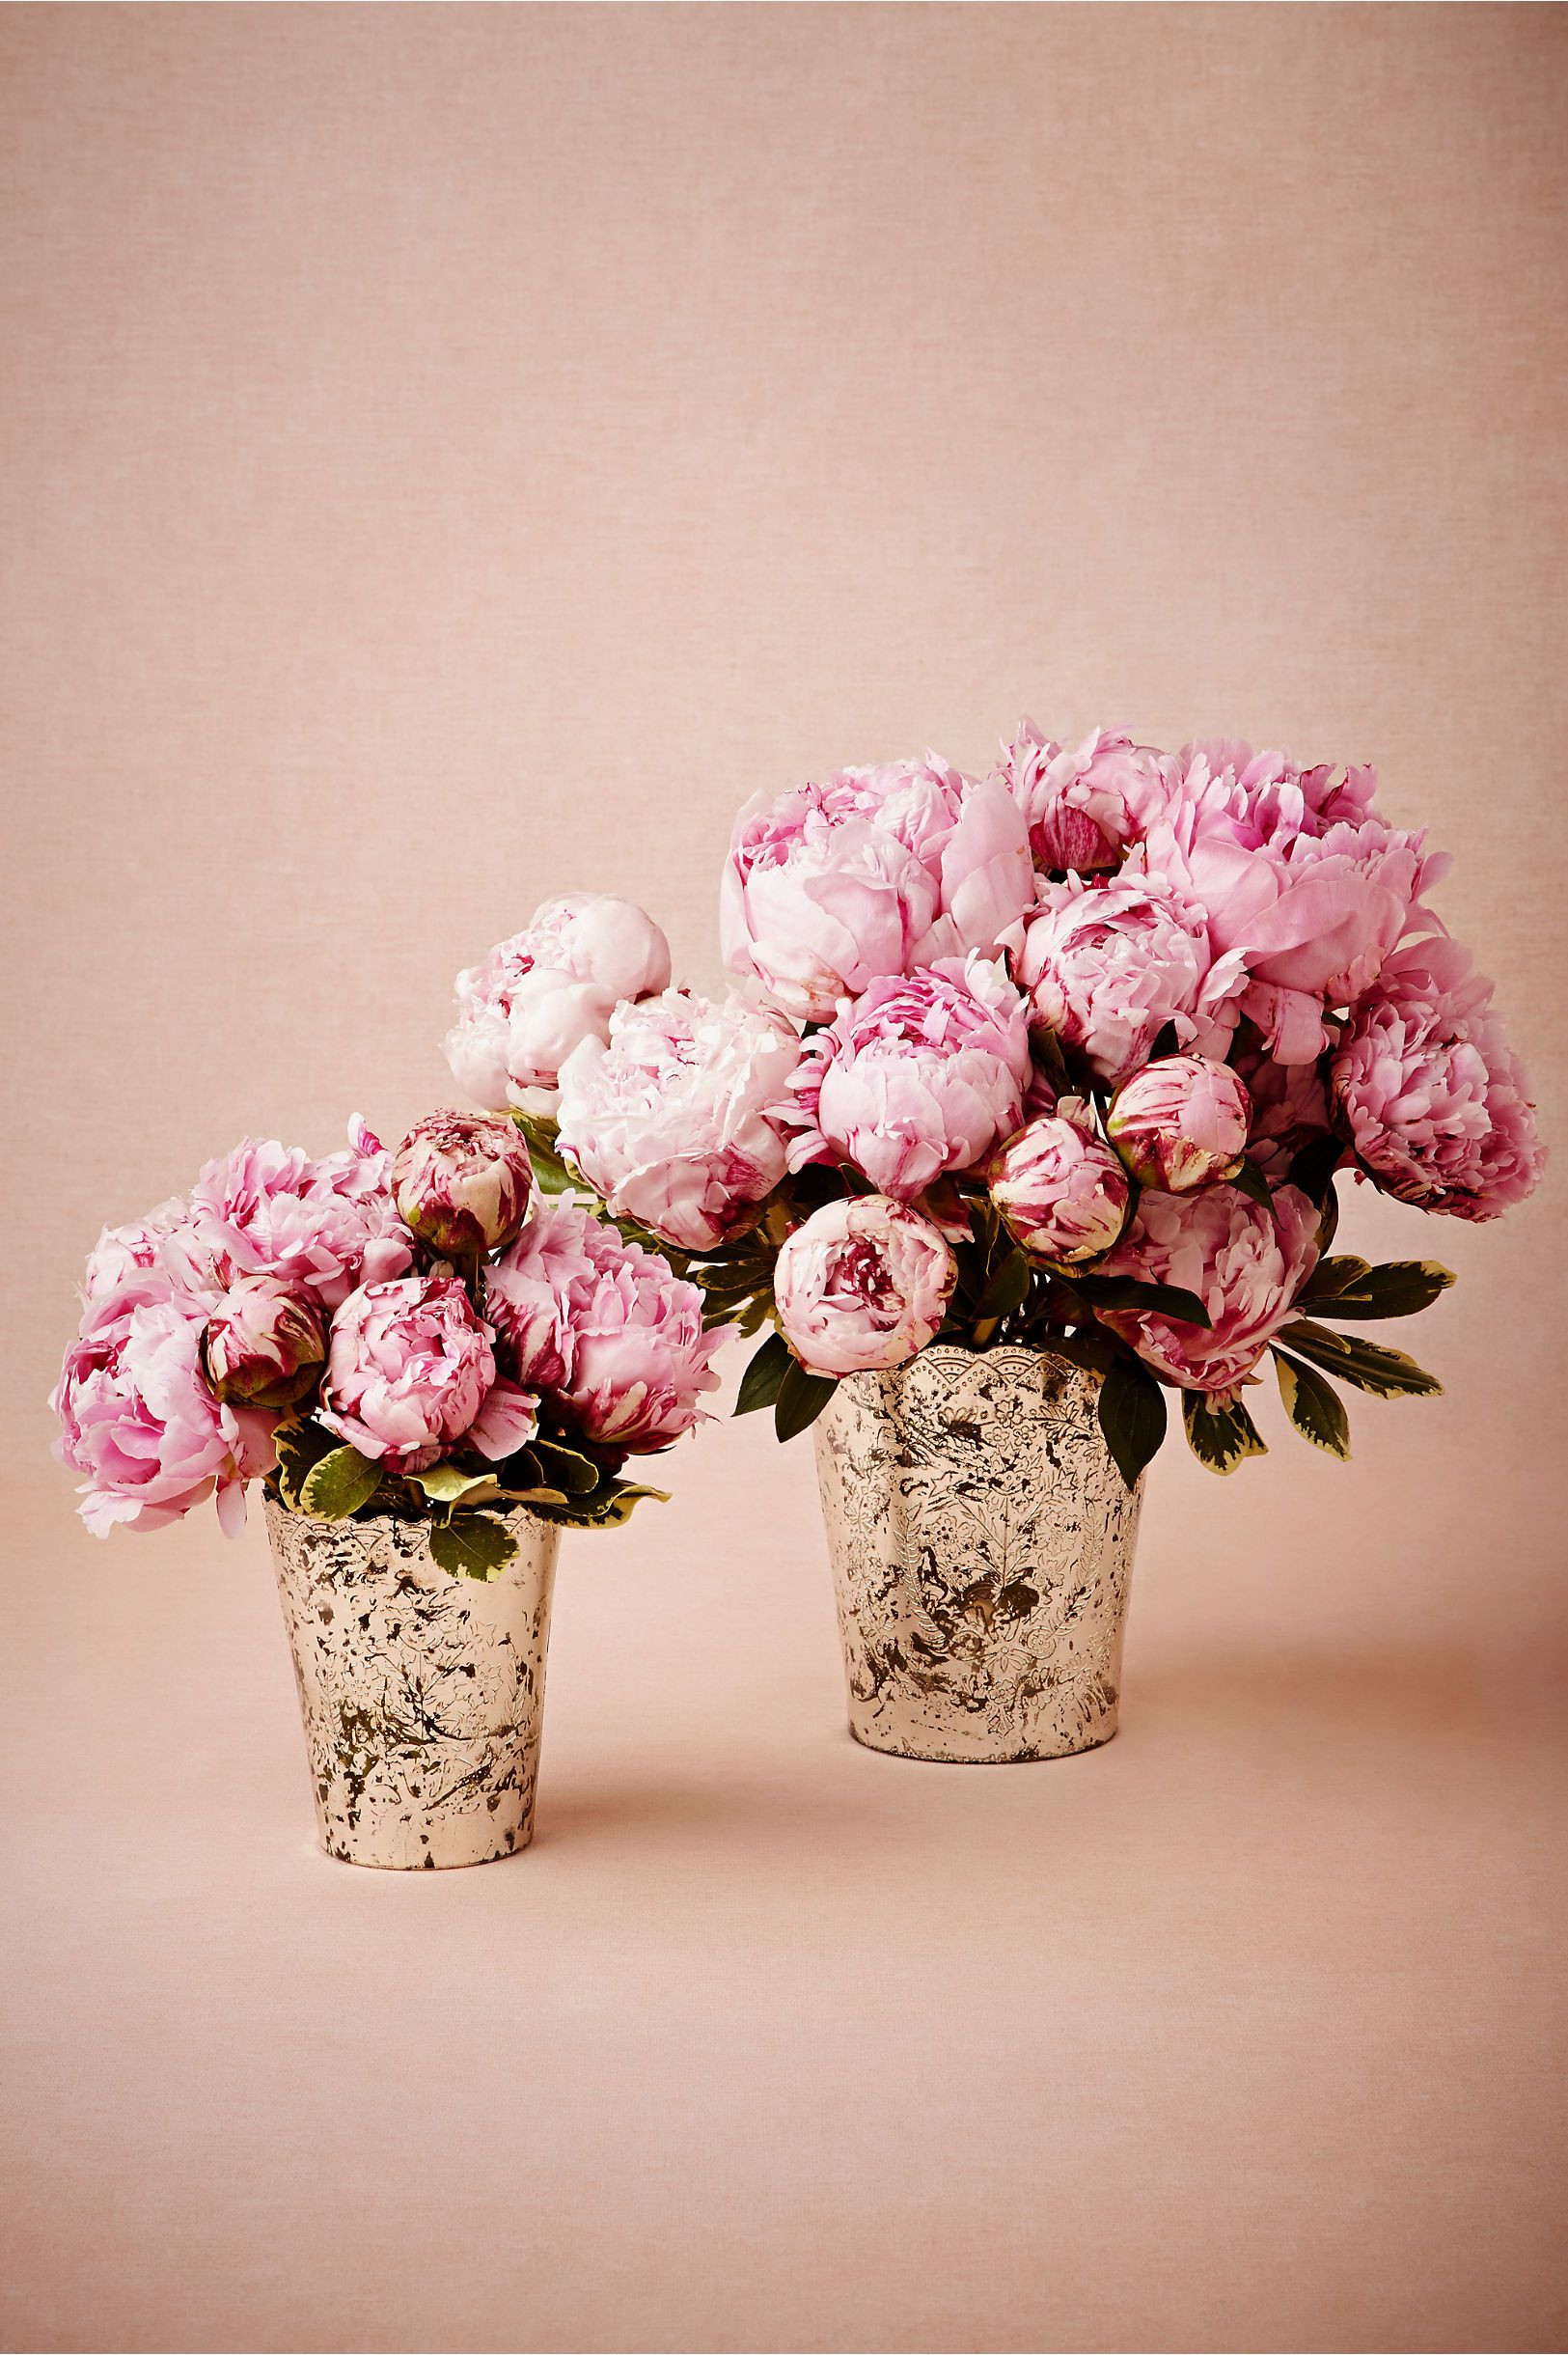 discount mercury glass vases of garden wedding decoration ideas pinterest peony botany and flowers for pink peonies